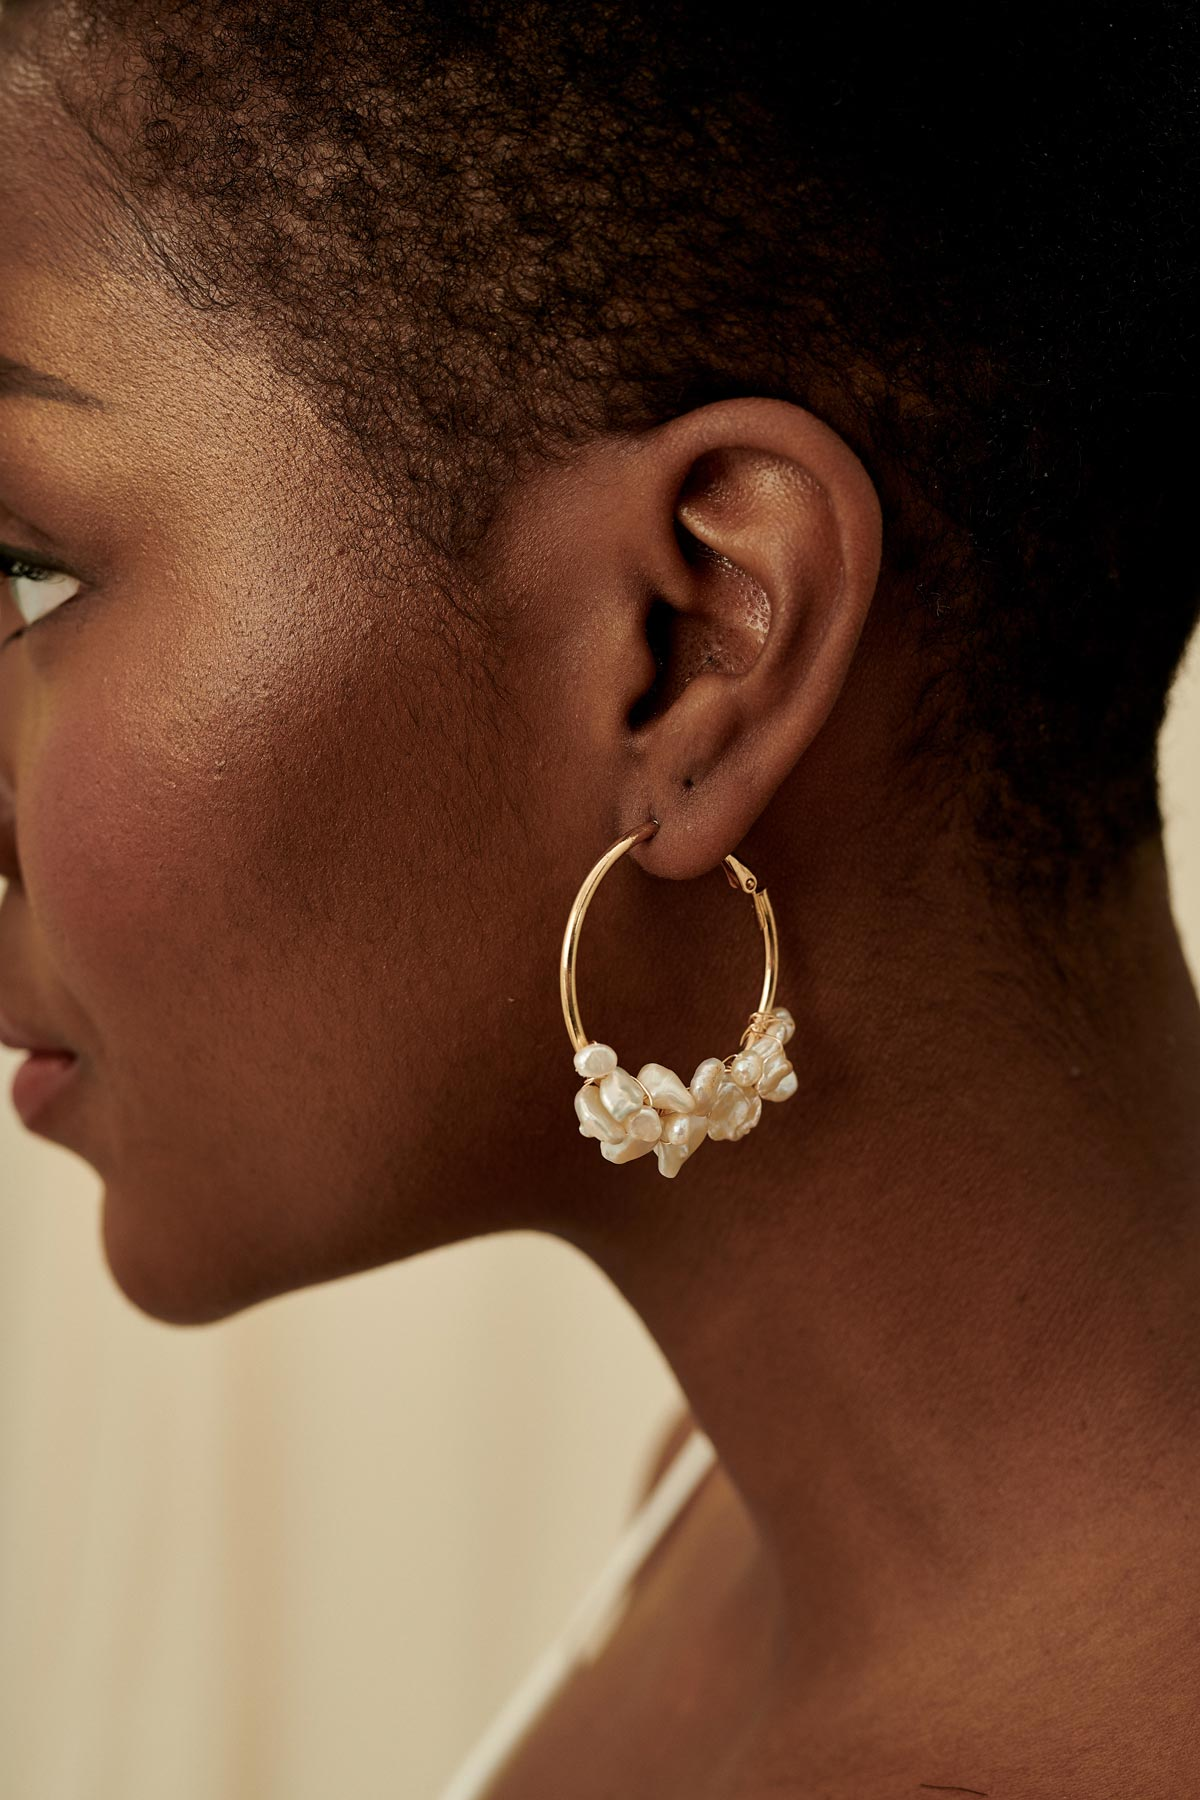 Intricate gold hoop earrings wired with freshwater pearl clusters.